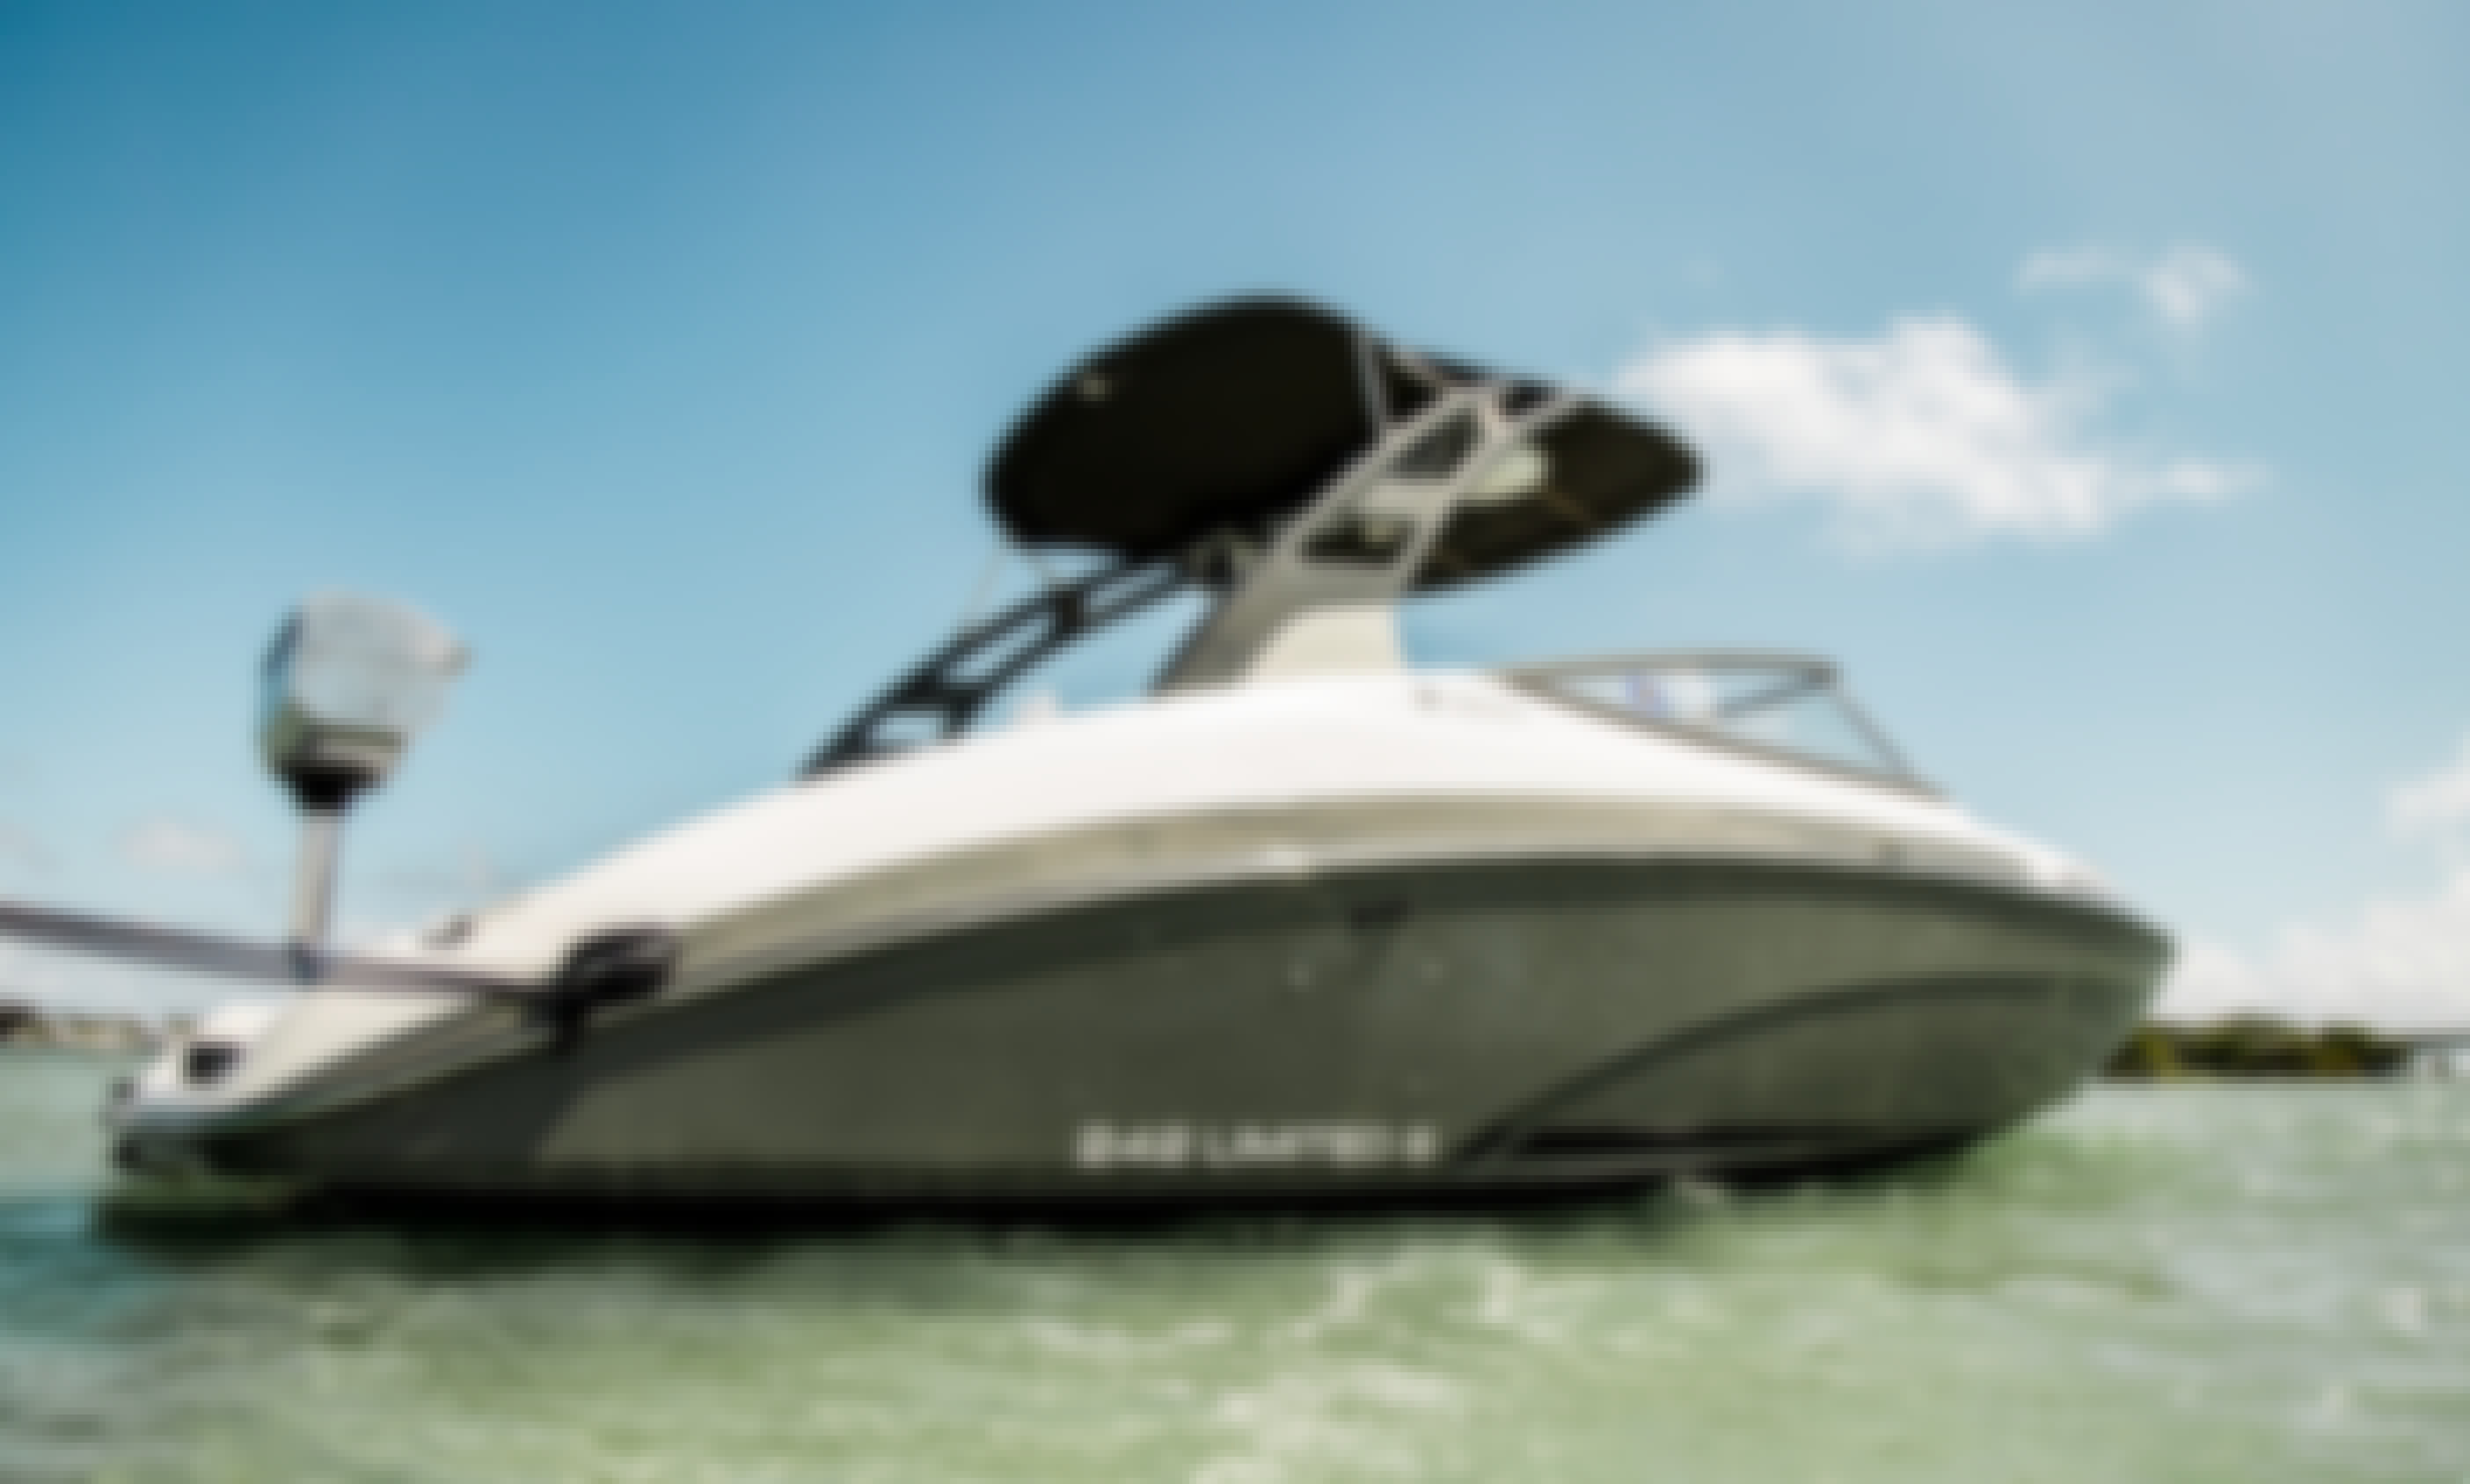 Yamaha 242 Limited Powerboat in Miami Beach